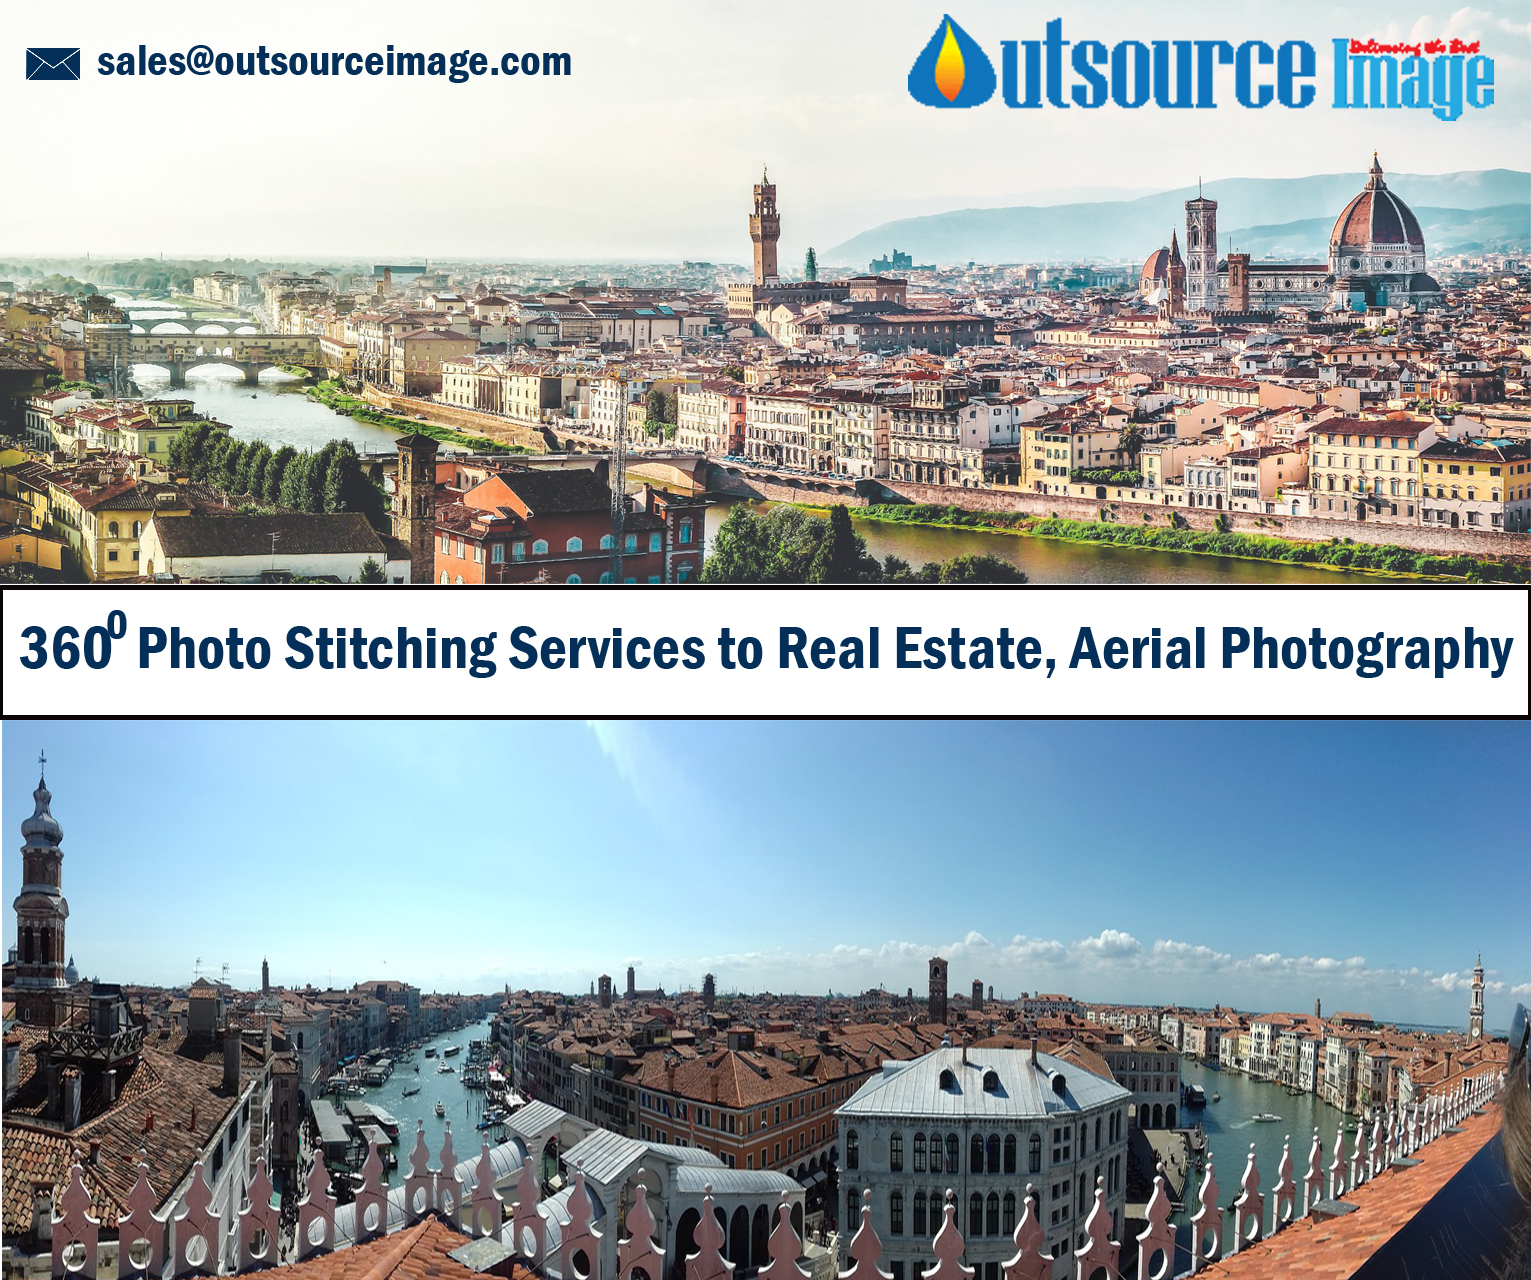 Real Estate Photo Stitching Services | Image Stitching Services to Photographers in UK, USA